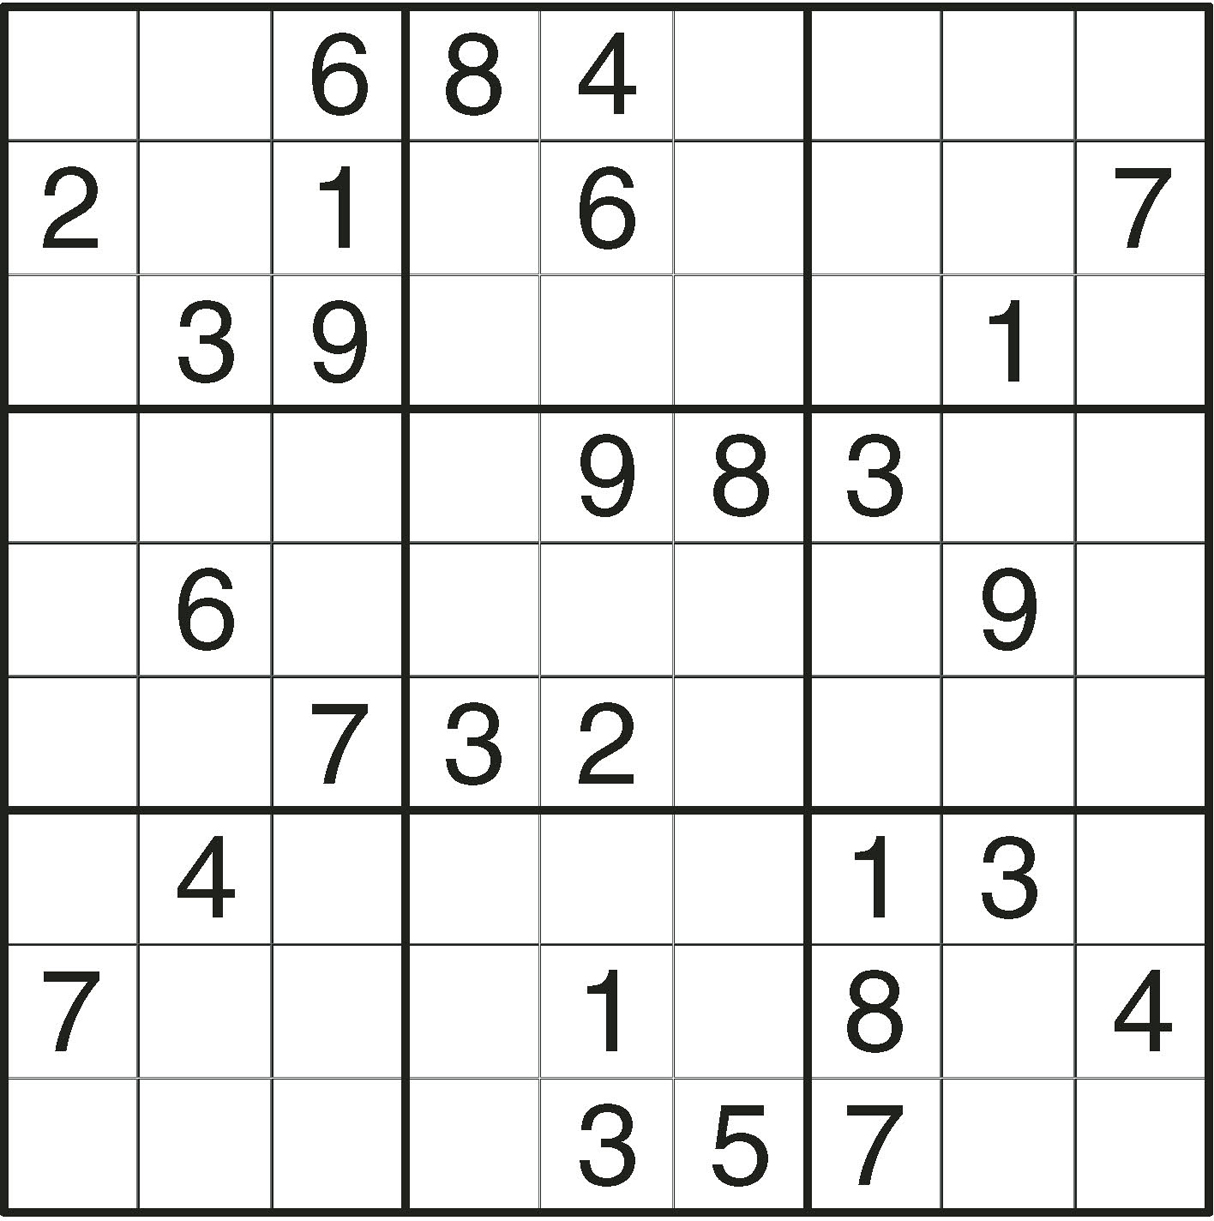 Légend image with regard to sudoku for beginners printable